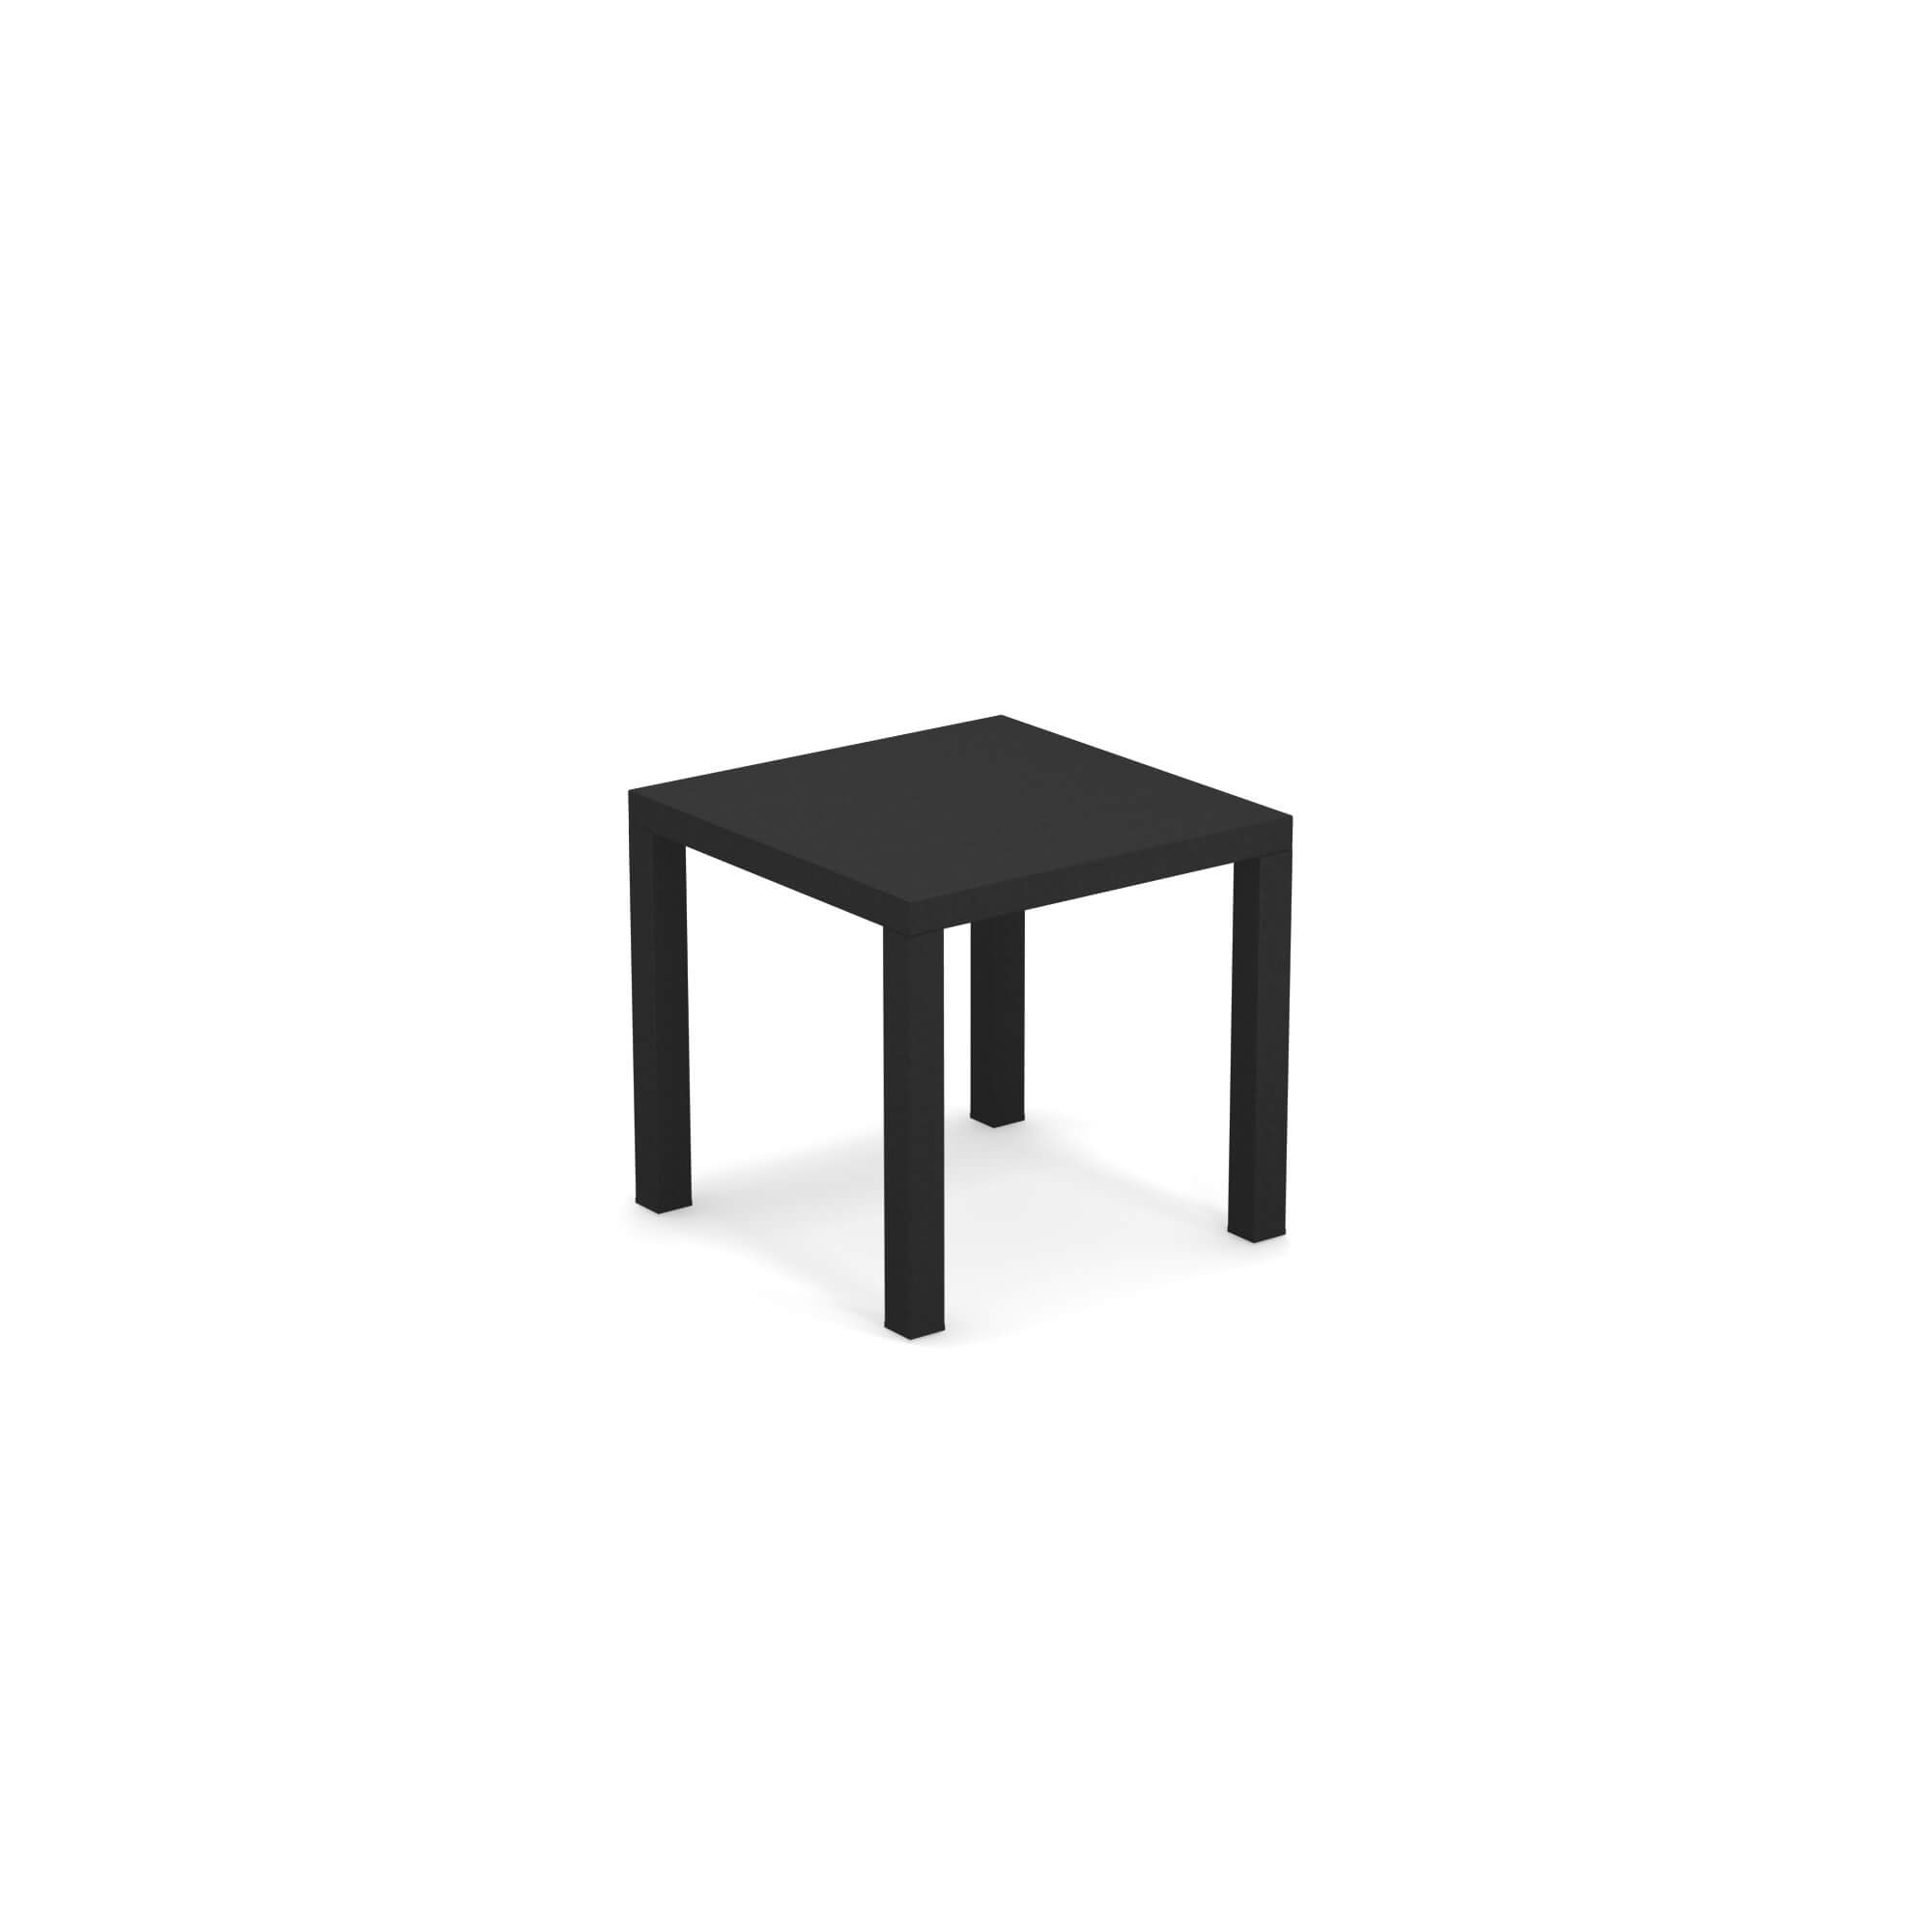 - Garden Coffee Table 45x45 / Outside In Steel - Collection Round